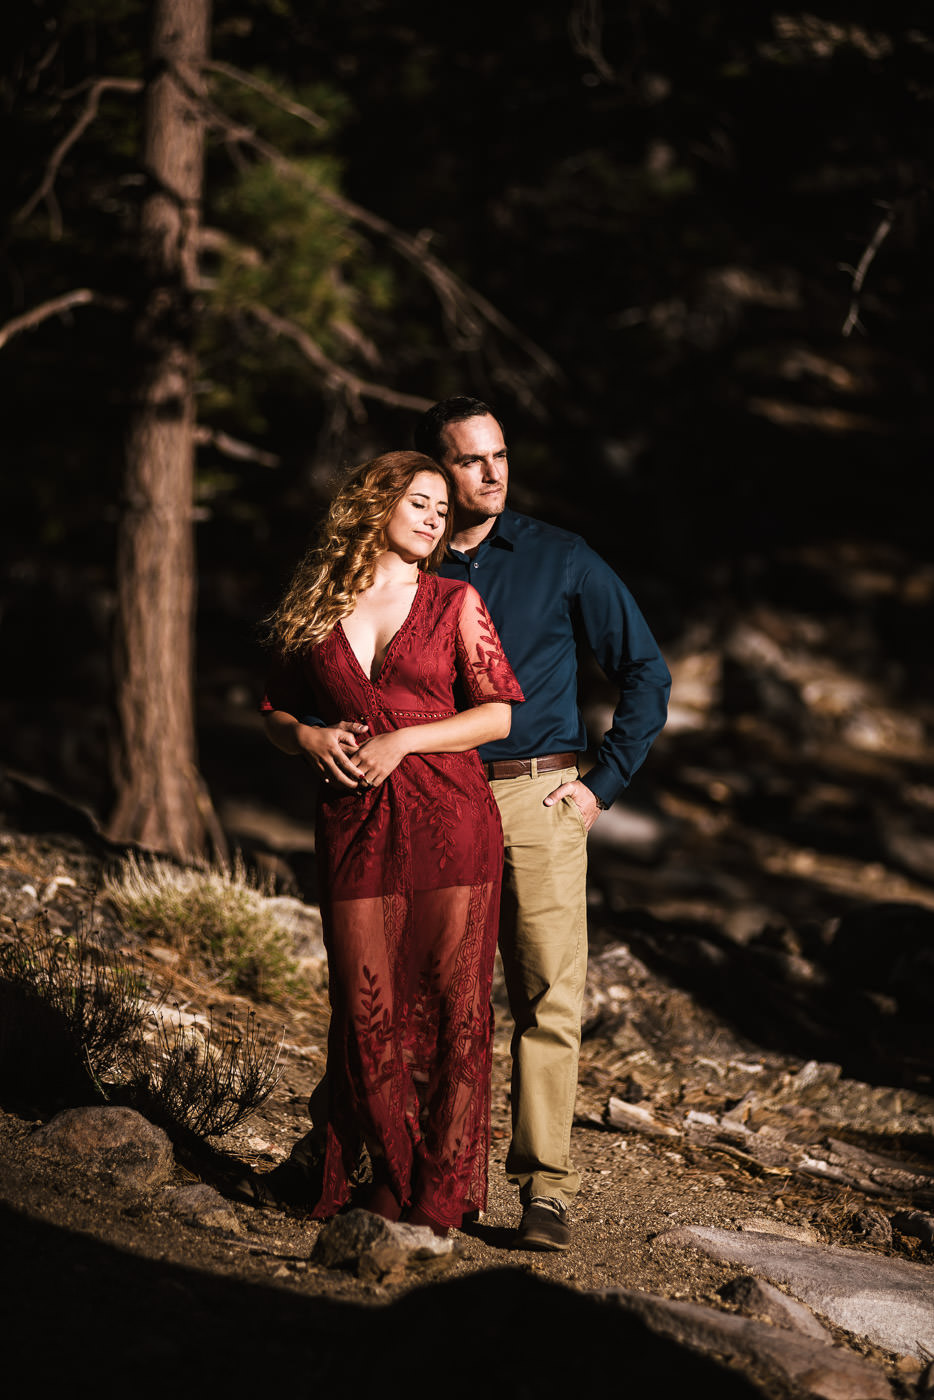 Woman leans against her future husband as the sun sets on the forests of Mt. San Jacinto.